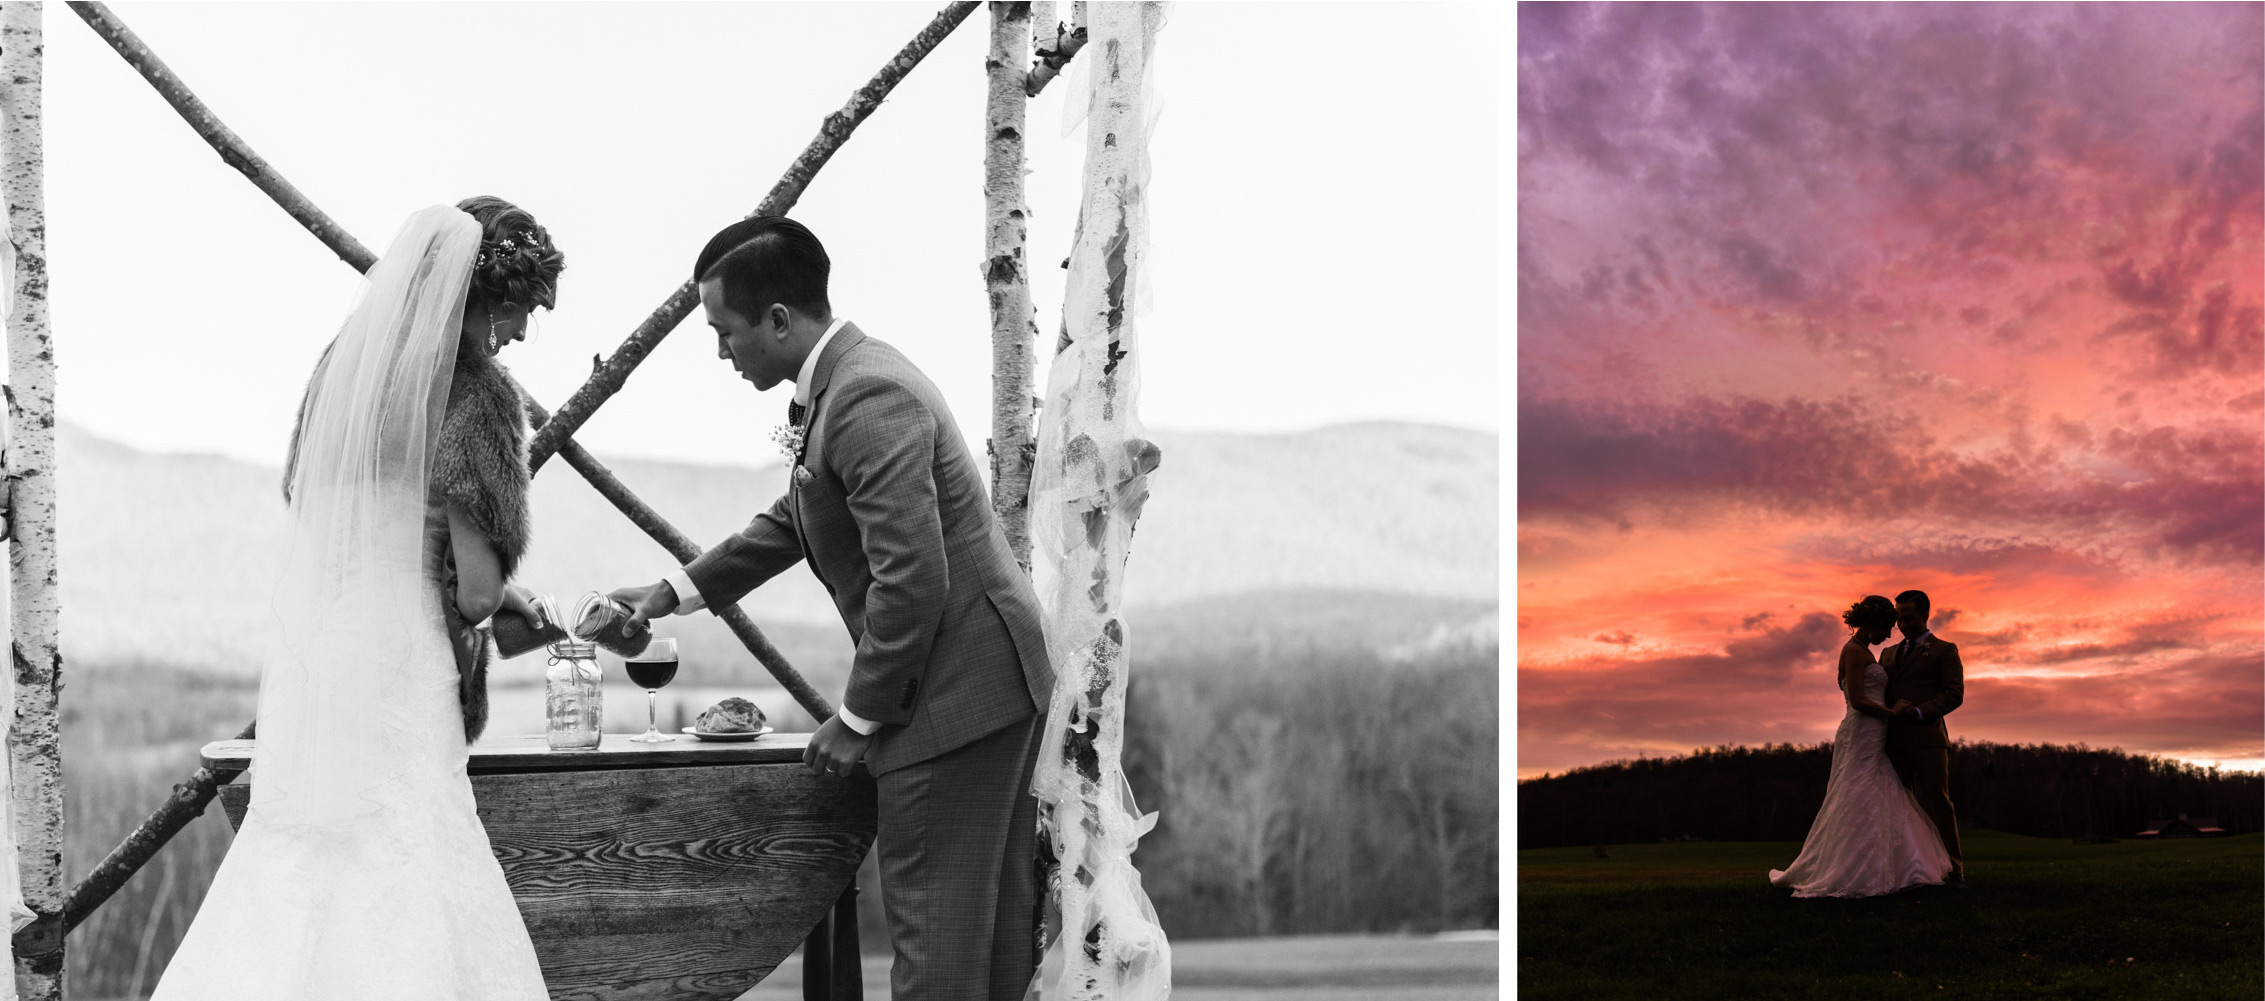 Mountain Top Inn and Resort Vermont Elegant Winter Wedding - Lorna Stell Photo - Boston, North Shore, Massachusetts and New England Wedding and Portrait Photographer for the Openhearted